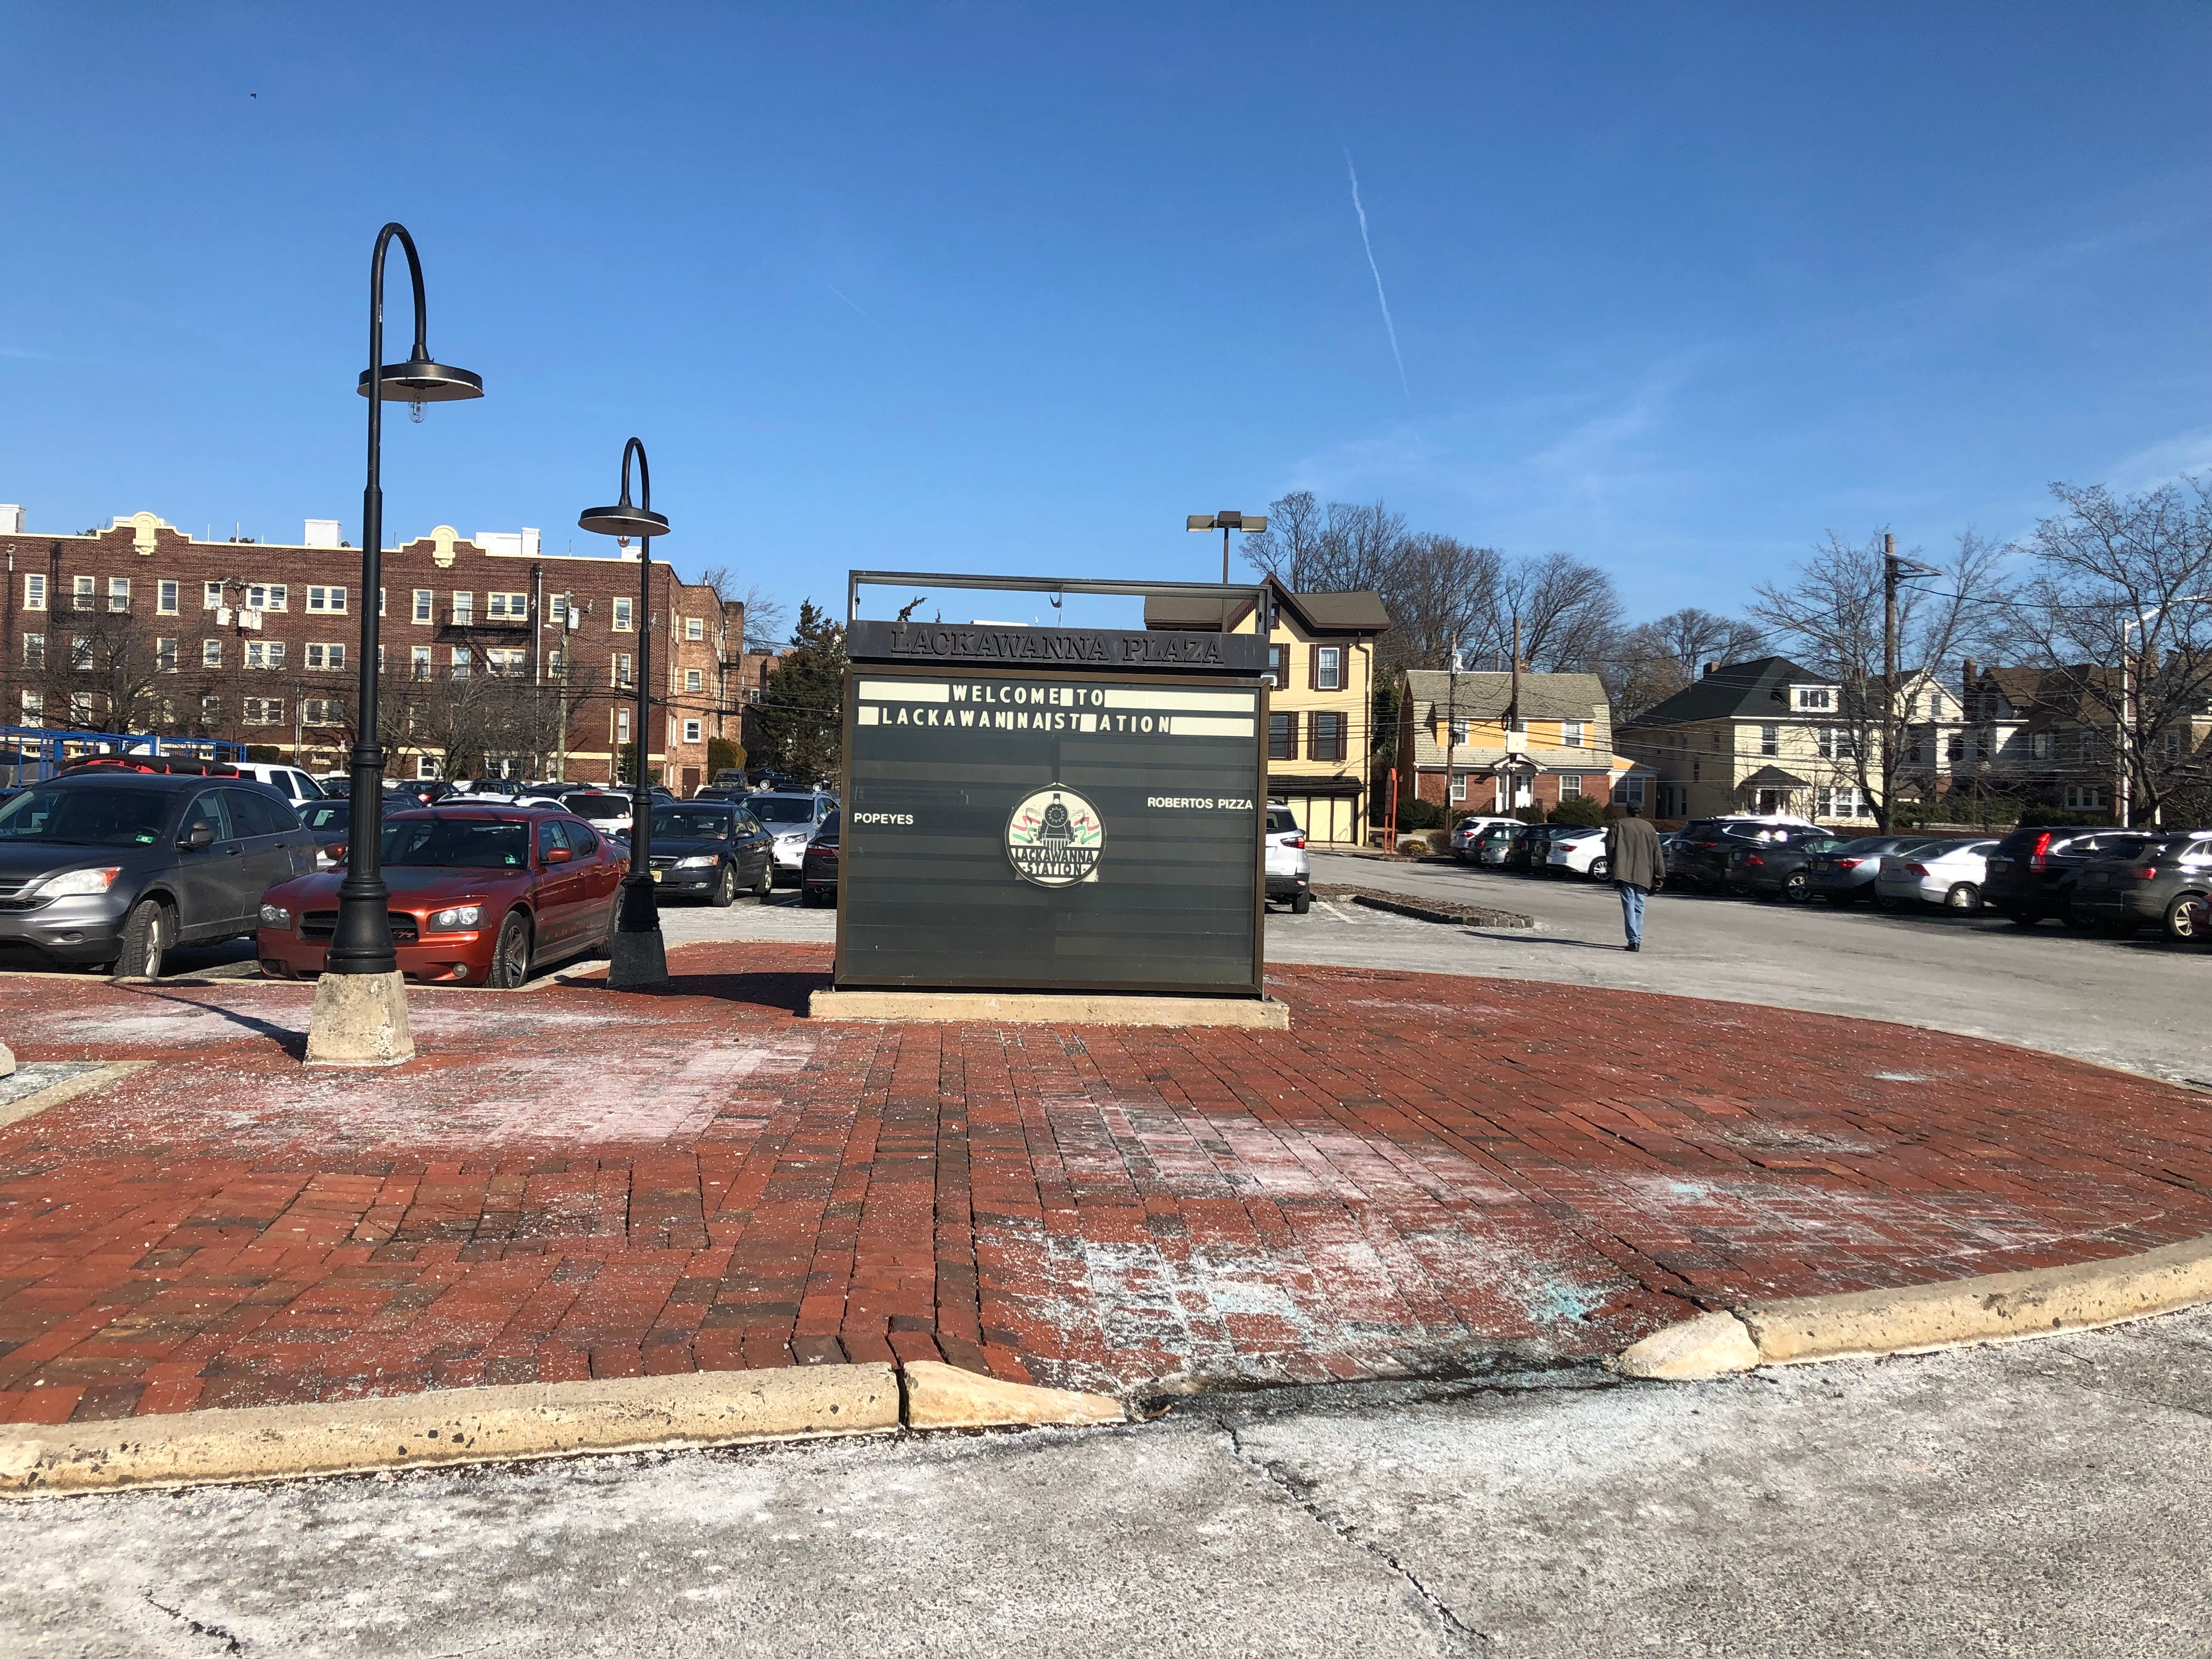 The Lackawanna Station south parcel, across Grove Street, will contain 154 apartments.